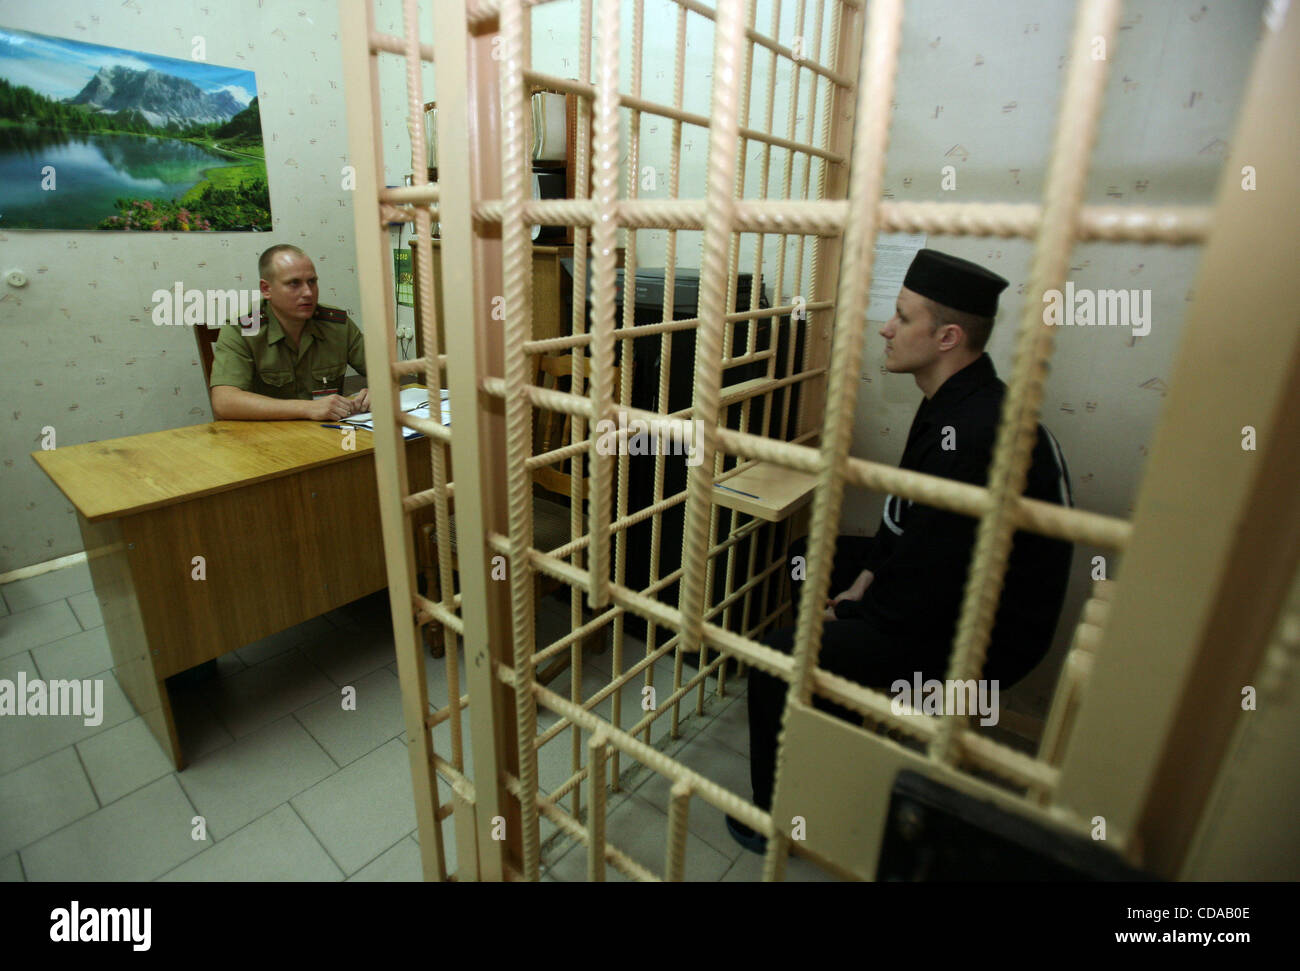 Belarus jail #8 for life imprisonment in Zhodino town  Criminal who